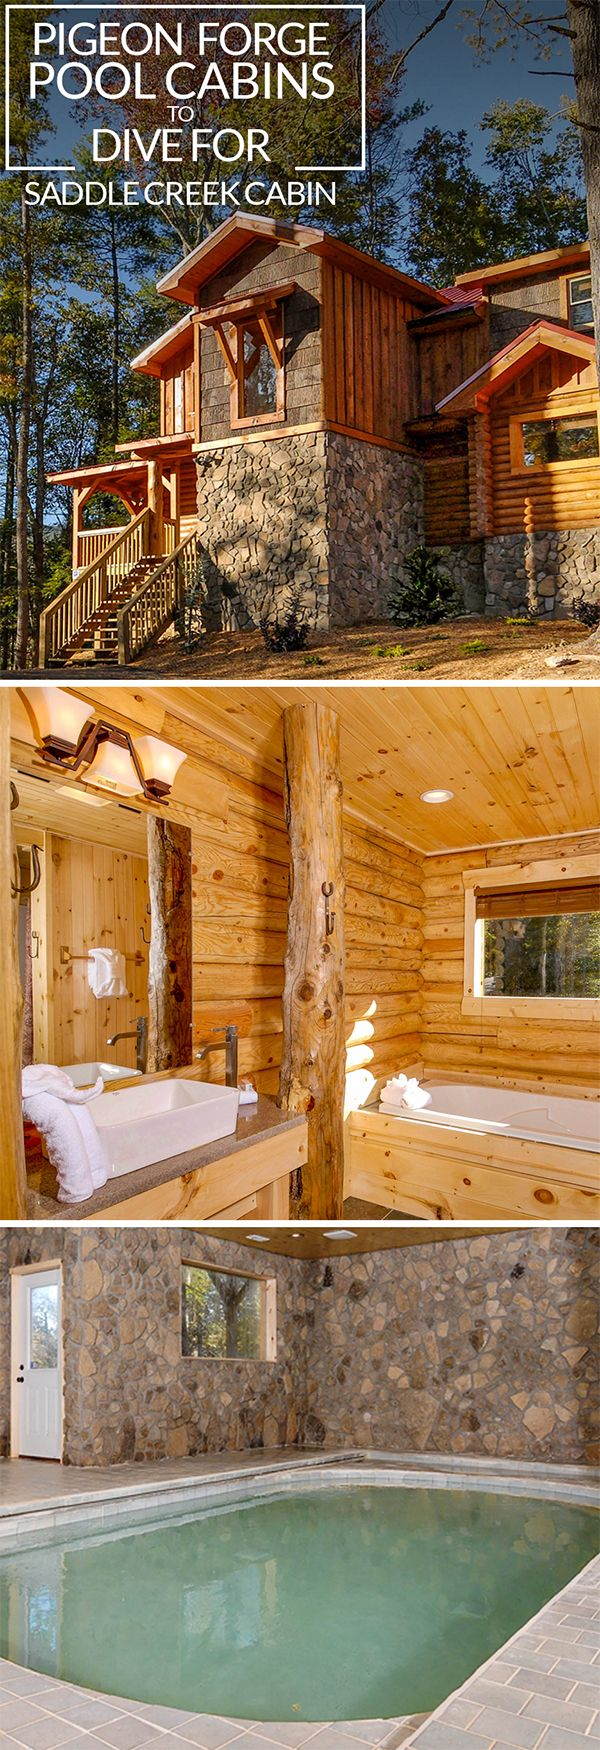 time luxurious images best pinterest has creek forge you indoor pools swims cabin on soothing to then cabins from covered cabinsforyou saddle pool baths with and pigeon